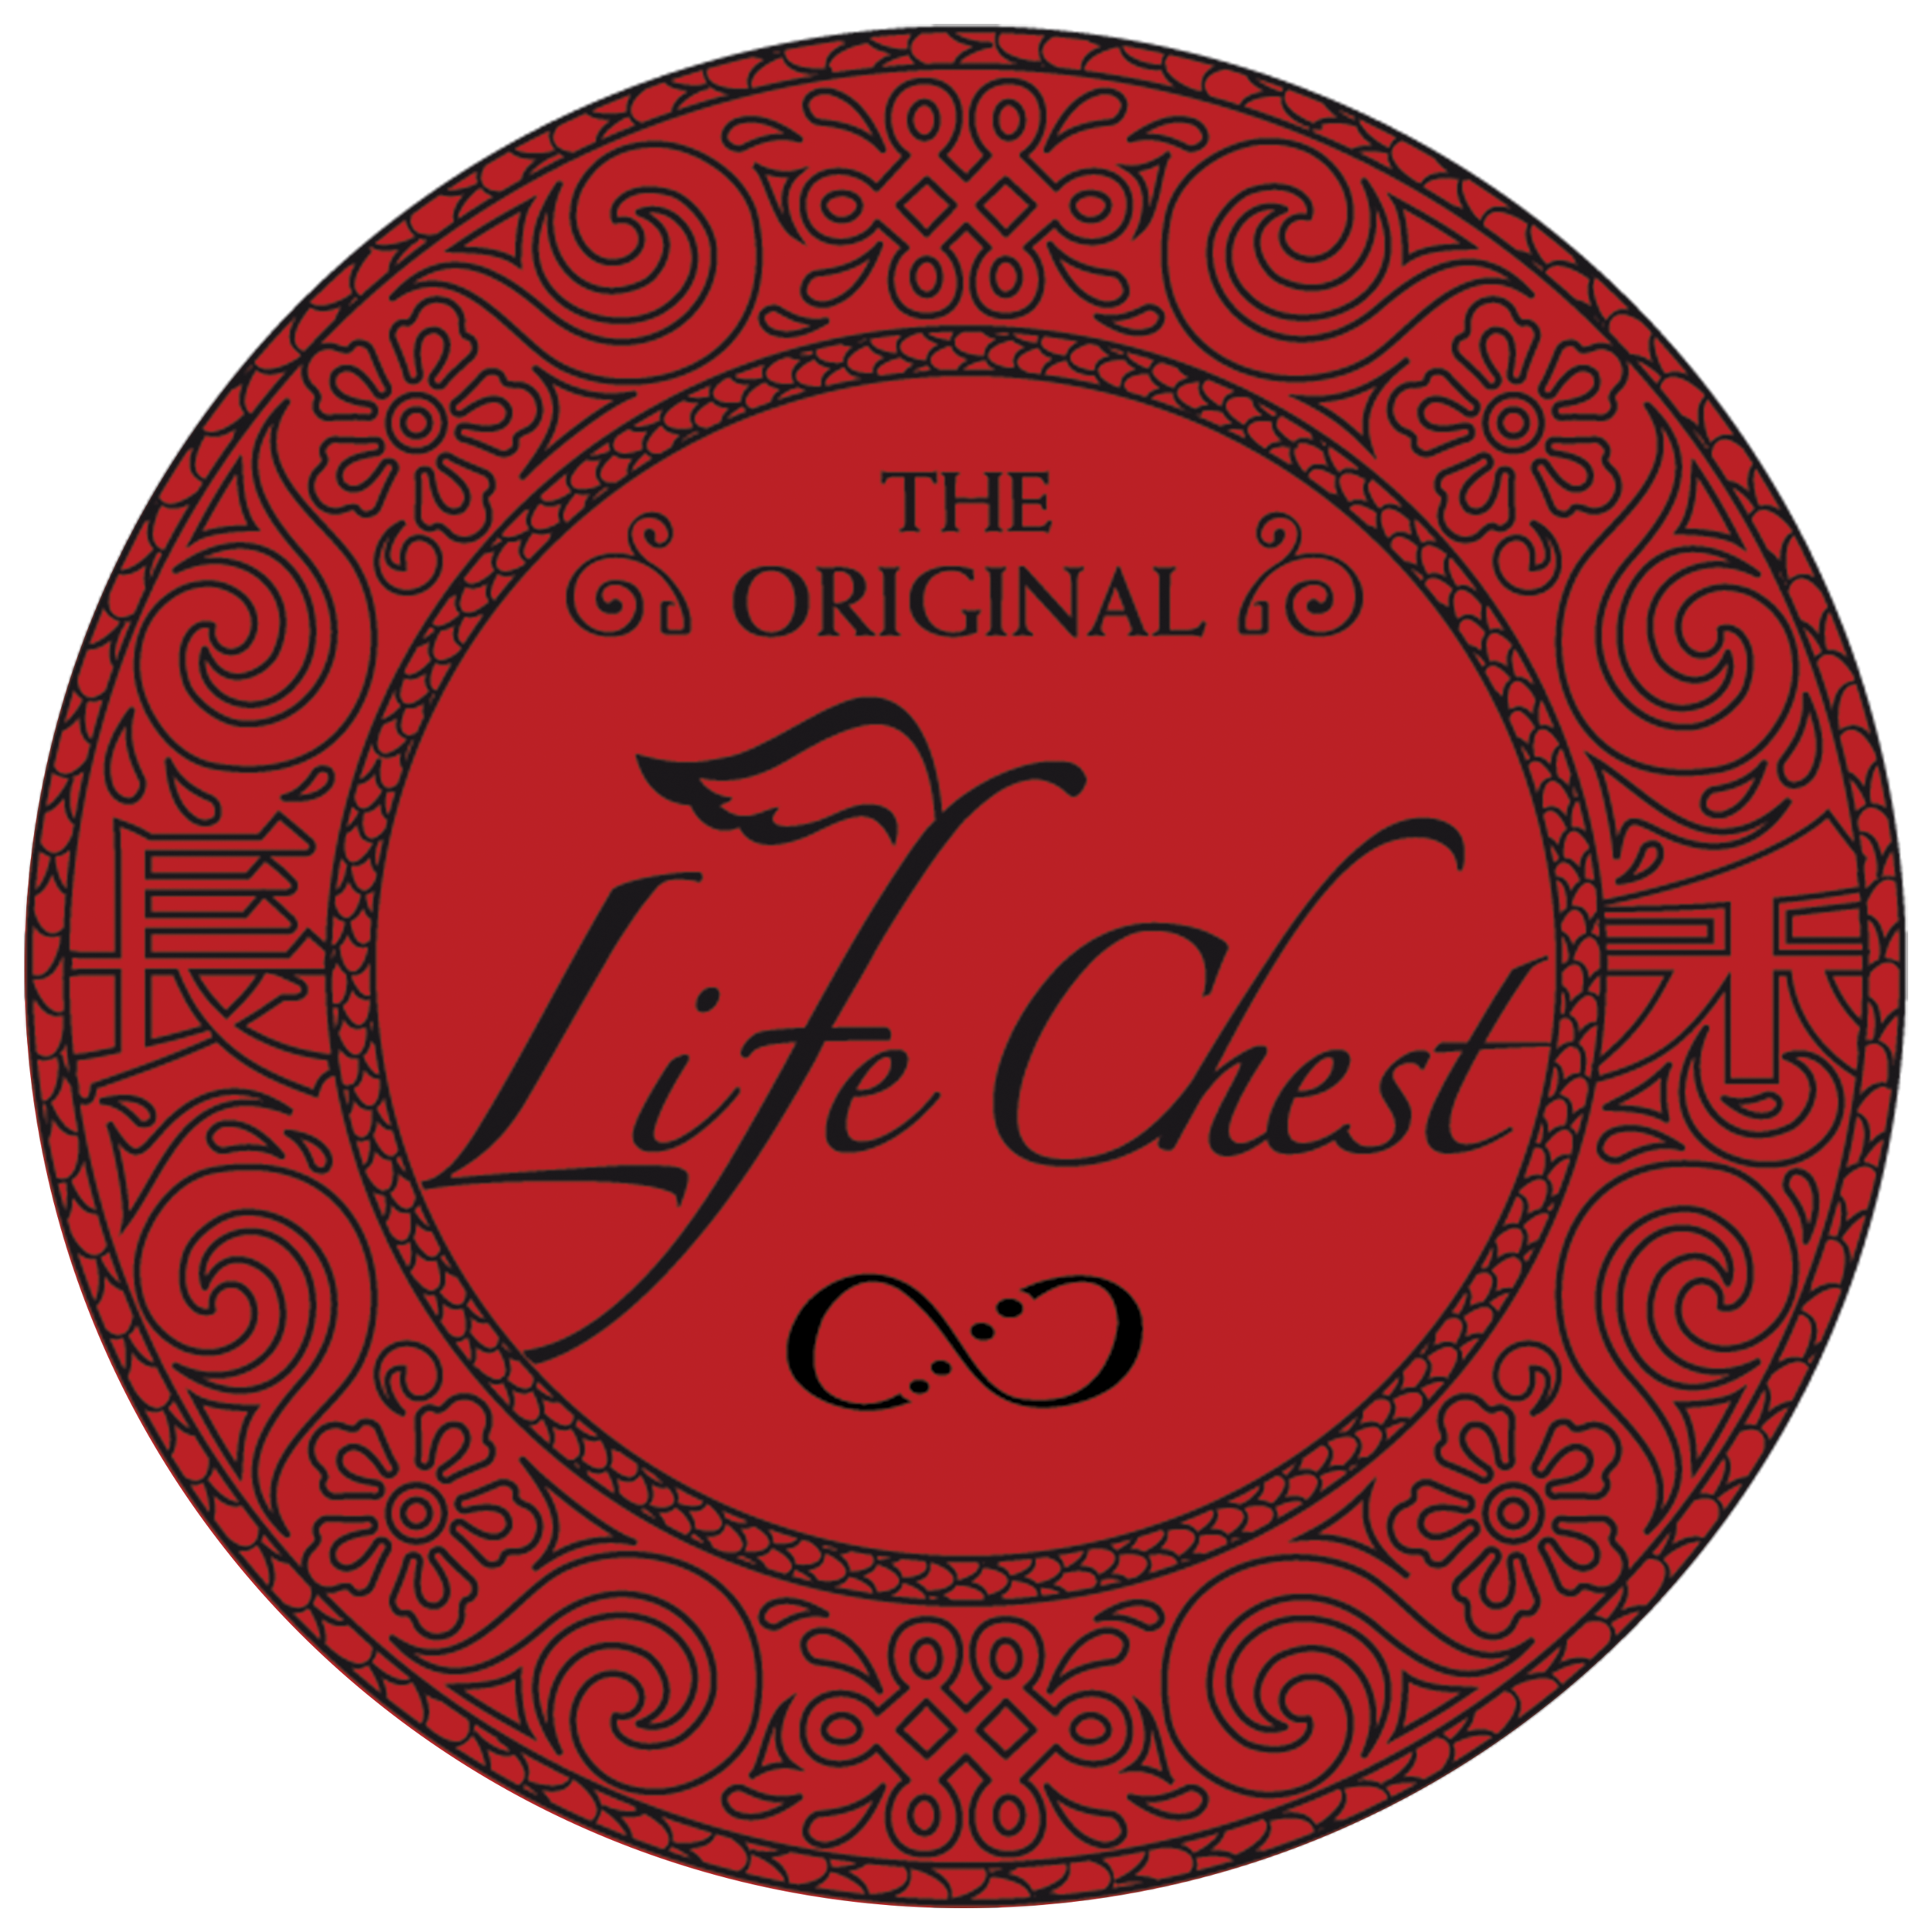 The Life Chest Logo